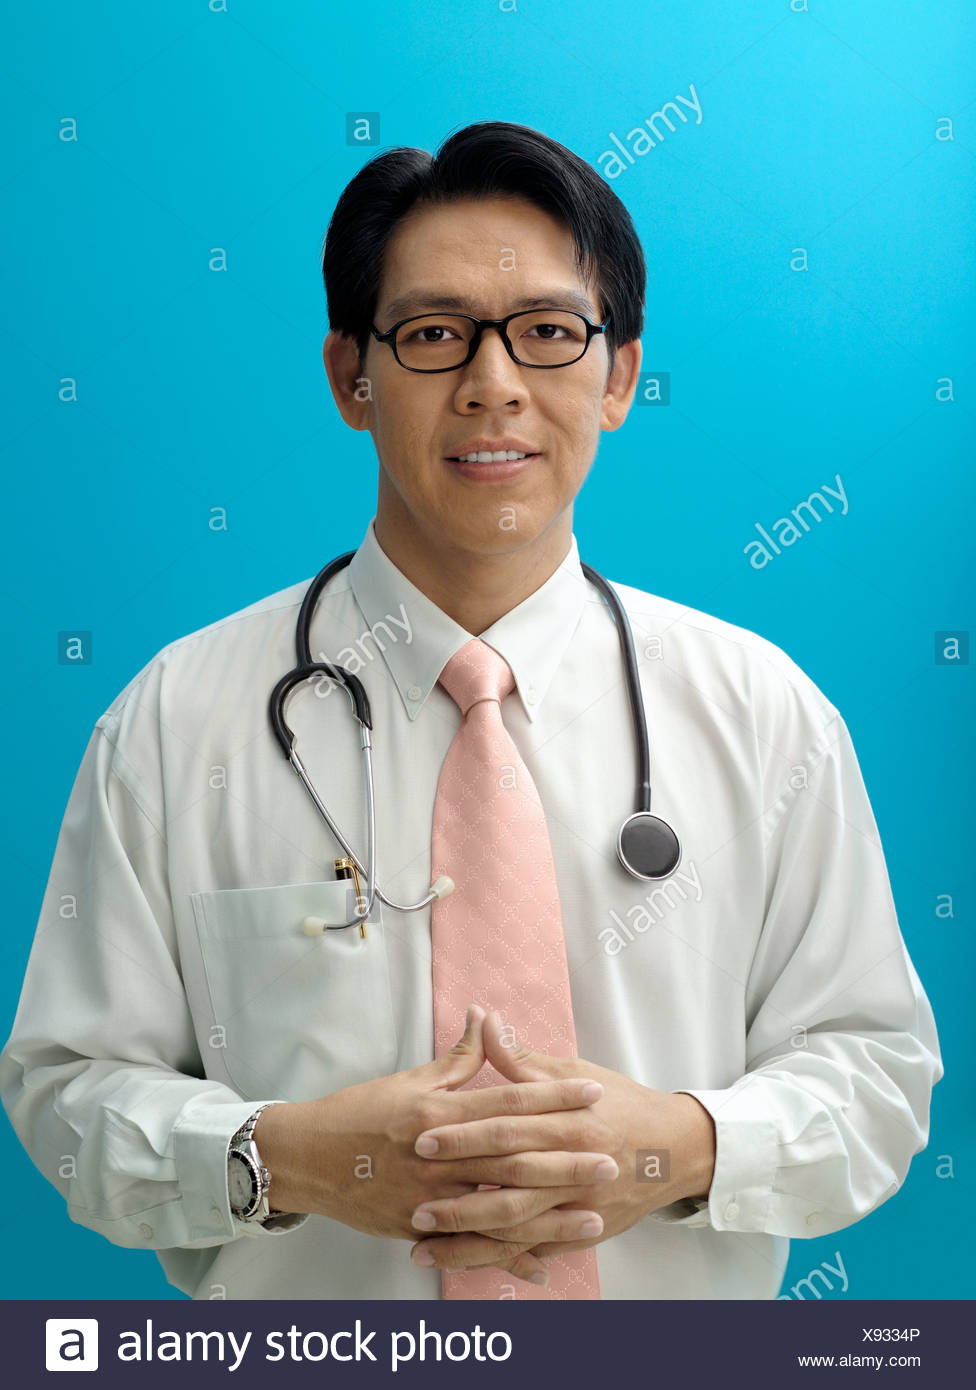 Portrait of a doctor - Stock Image